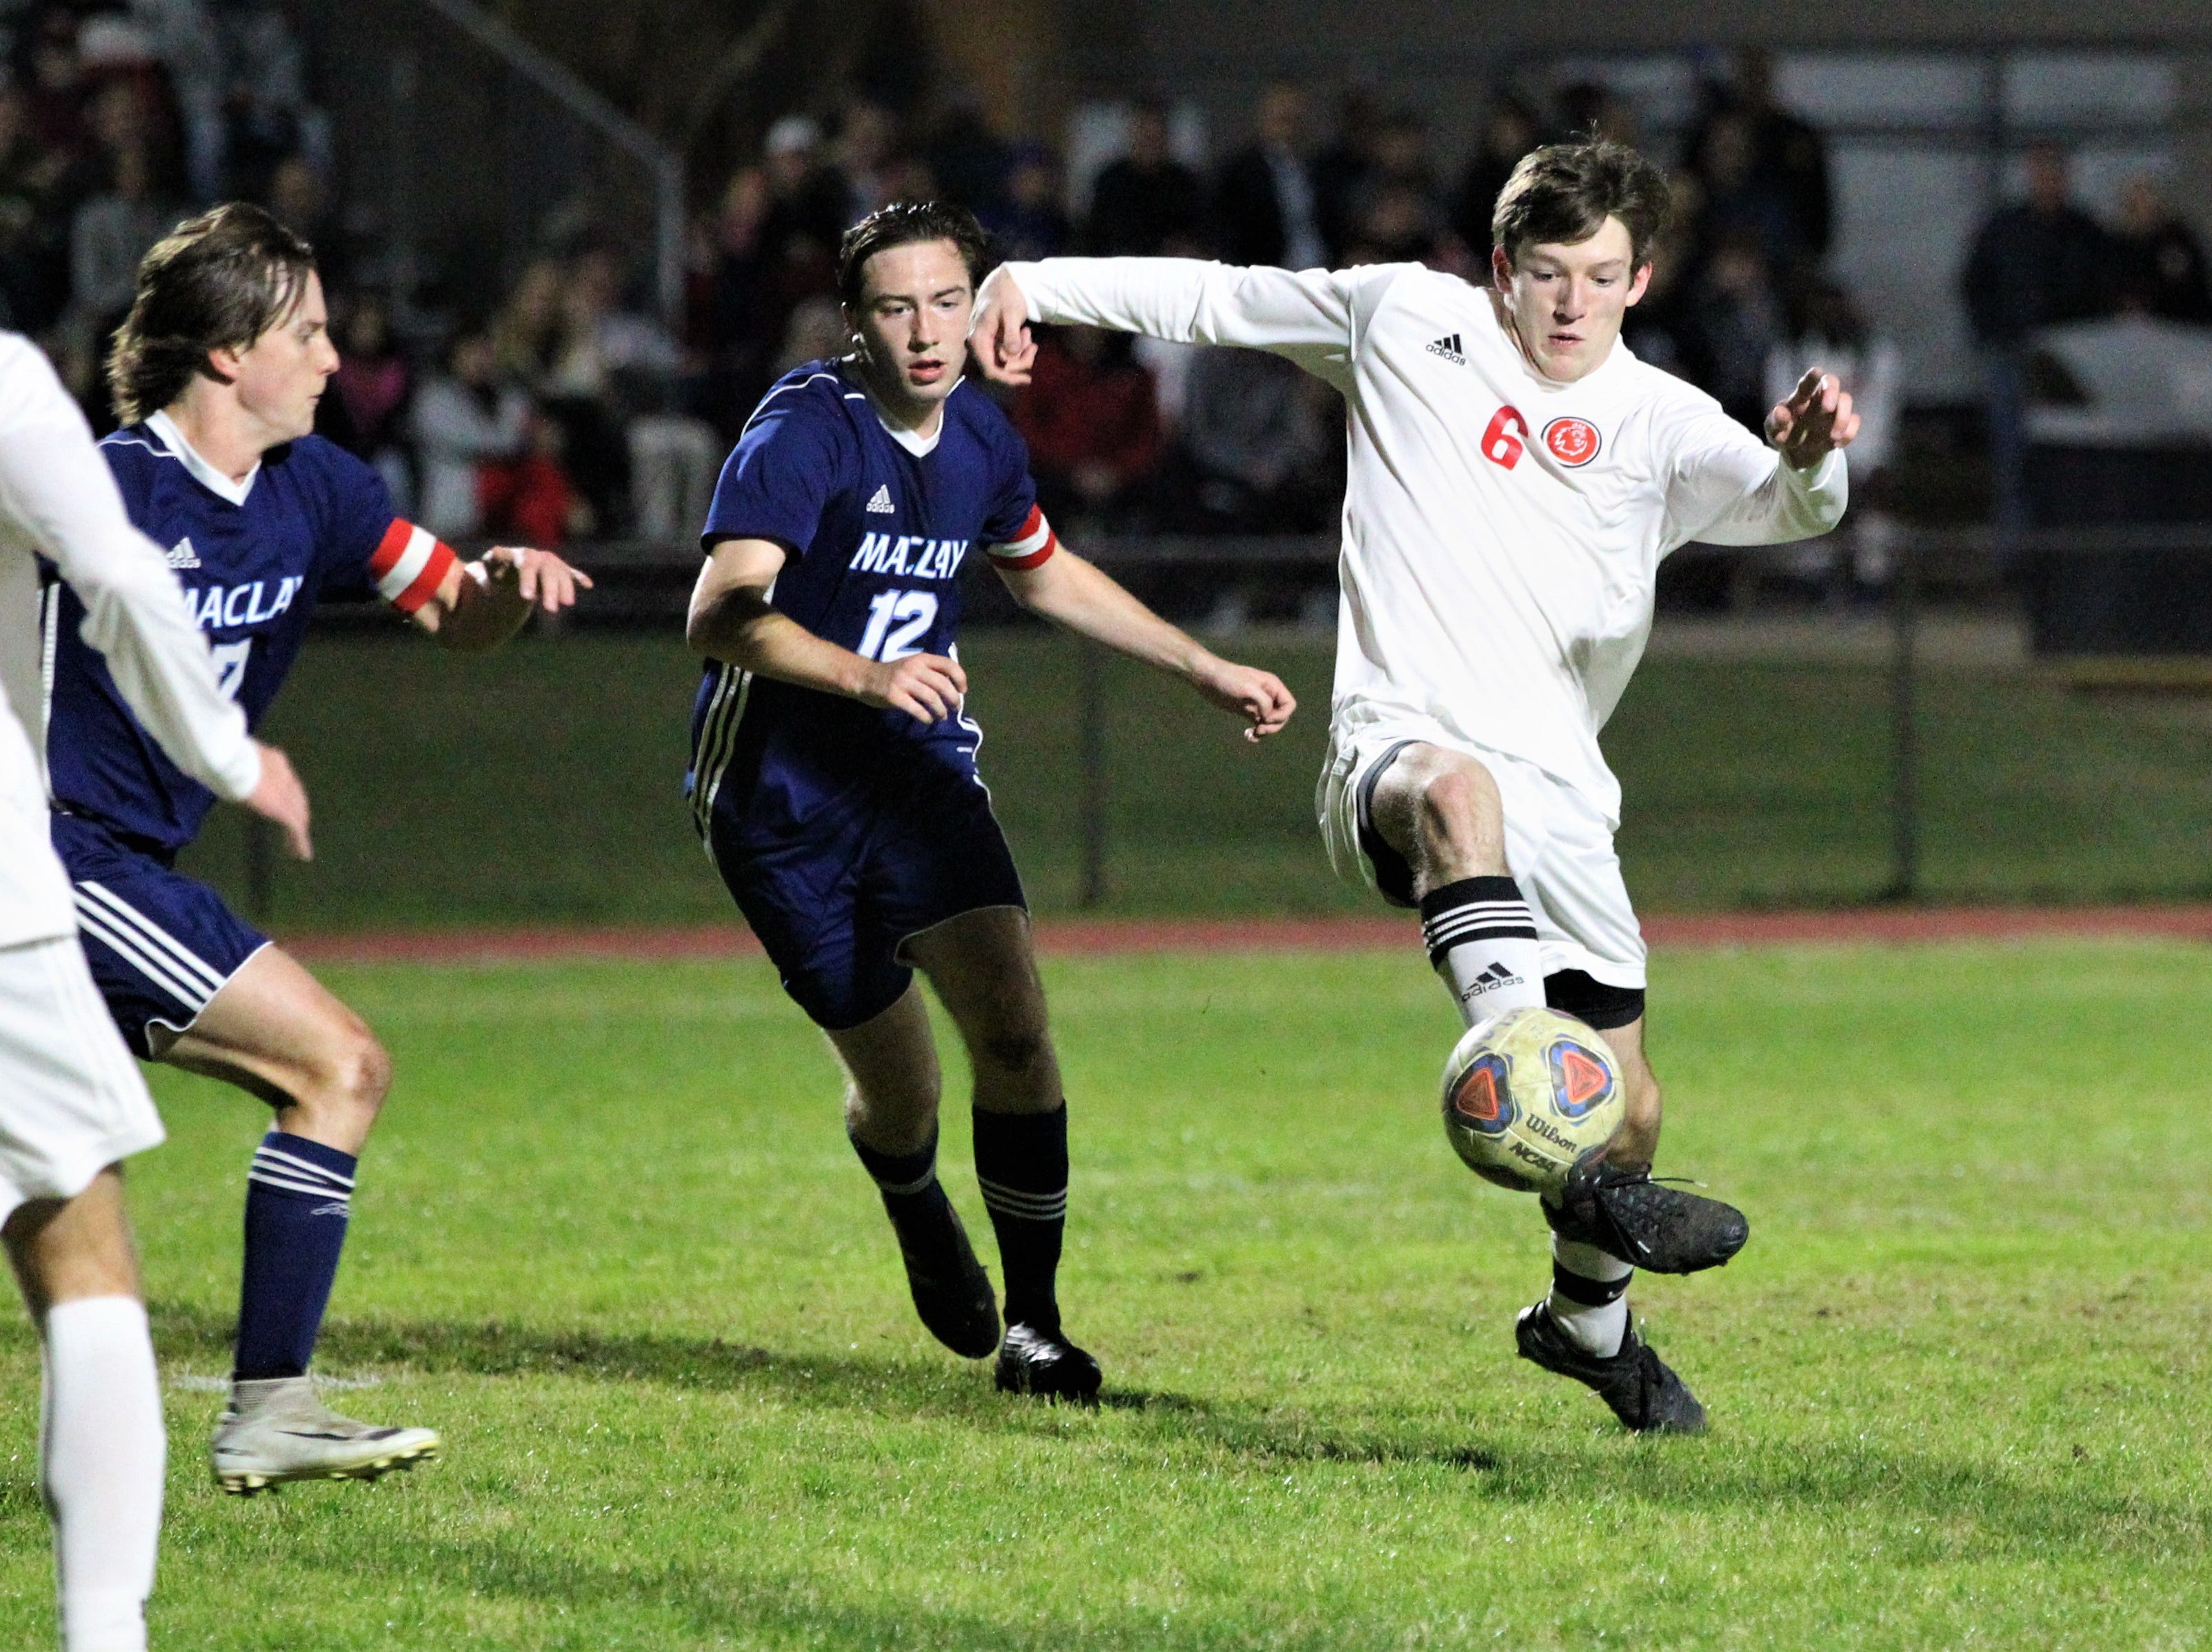 Leon's Tate Wallenfelsz plays a pass with the outside of his foot as Leon's boys soccer team beat Maclay 3-1 on Jan. 22, 2019.